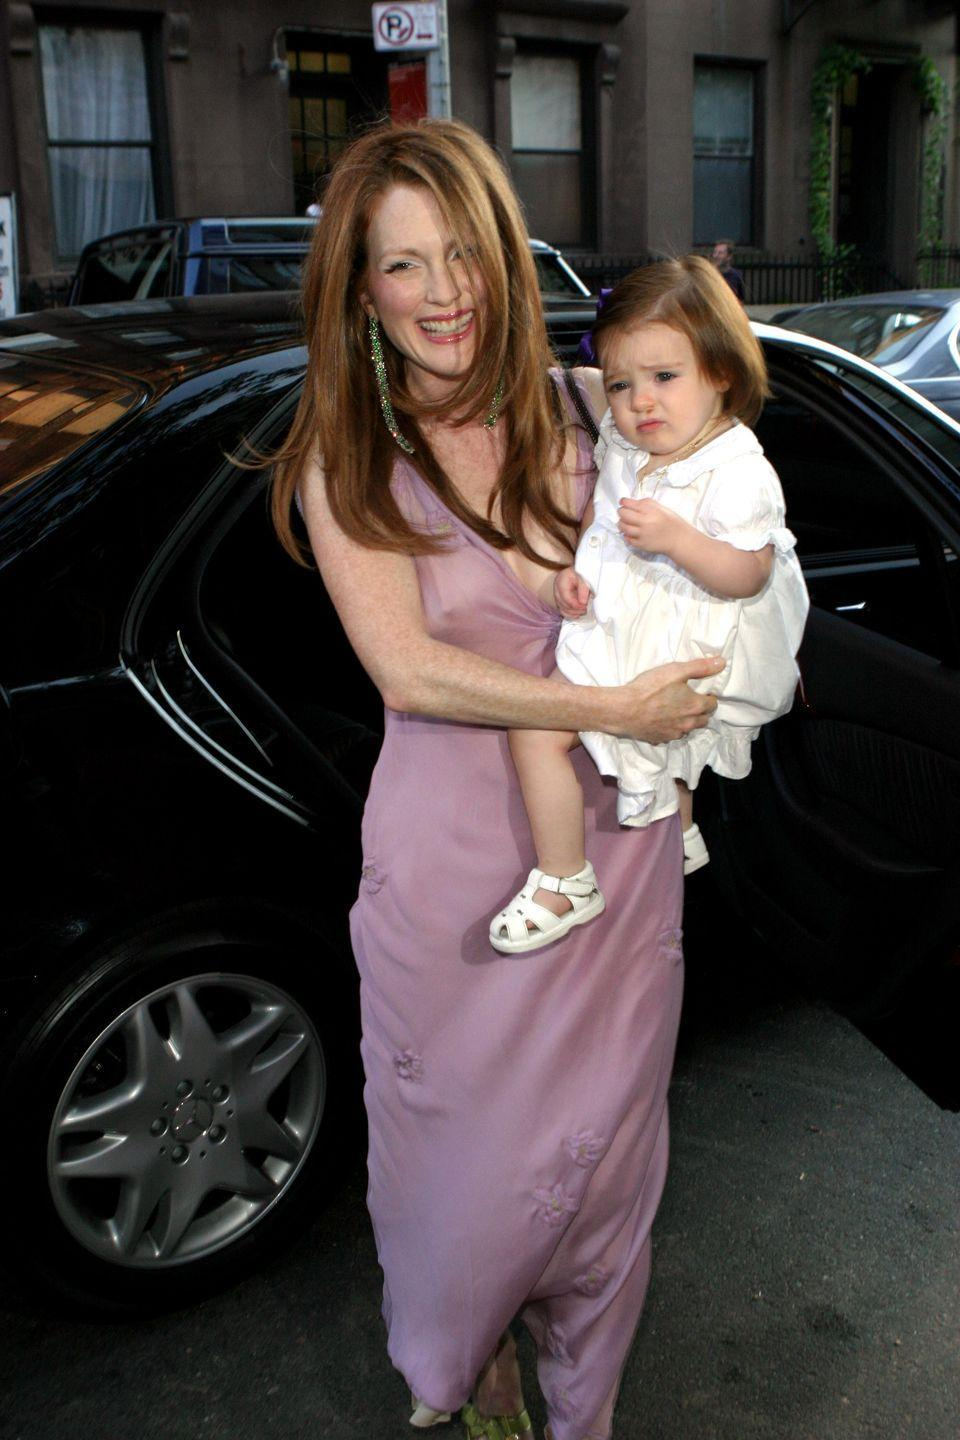 "<p>Julianne Moore opted against white for her wedding to Bart Freundlich and wore a <a href=""https://www.eonline.com/photos/9414/celebs-who-didn-t-wear-white-wedding-gowns/301447"" rel=""nofollow noopener"" target=""_blank"" data-ylk=""slk:lavender Prada dress"" class=""link rapid-noclick-resp"">lavender Prada dress</a> instead. The couple said their vows at a friend's Greenwich Village home back in 2003.</p>"